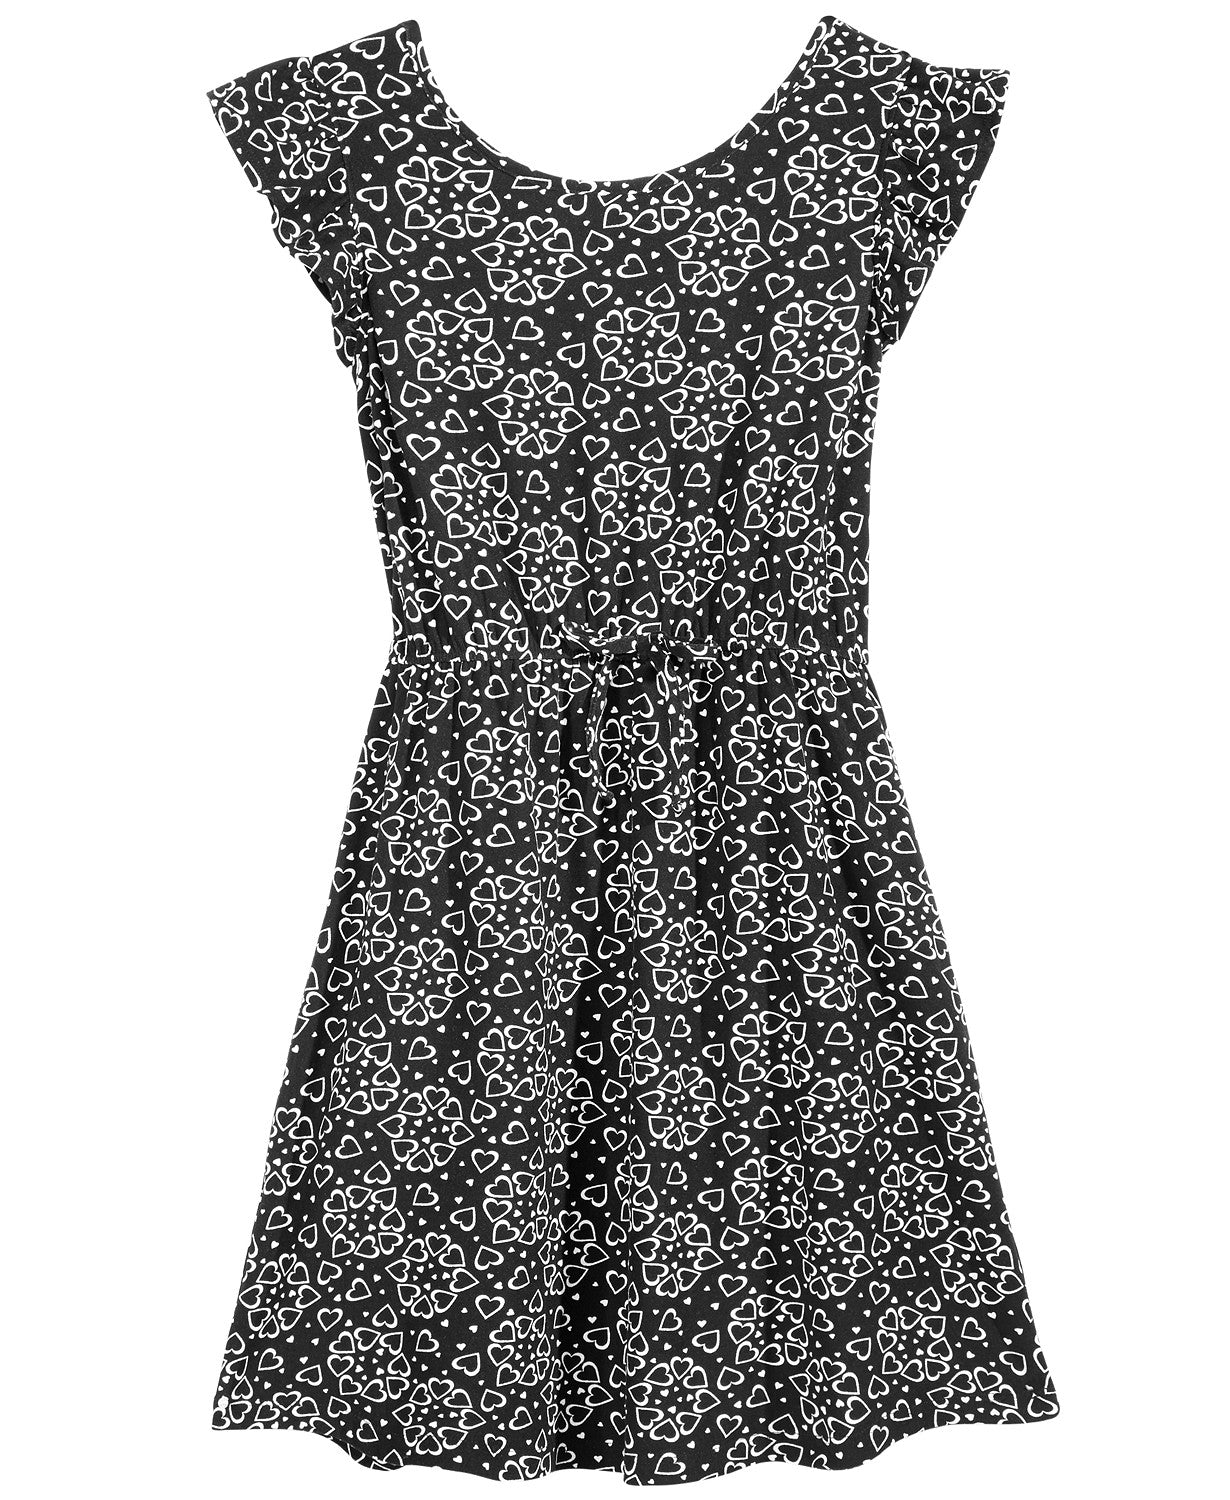 Epic Threads Printed Dress, Big Girls